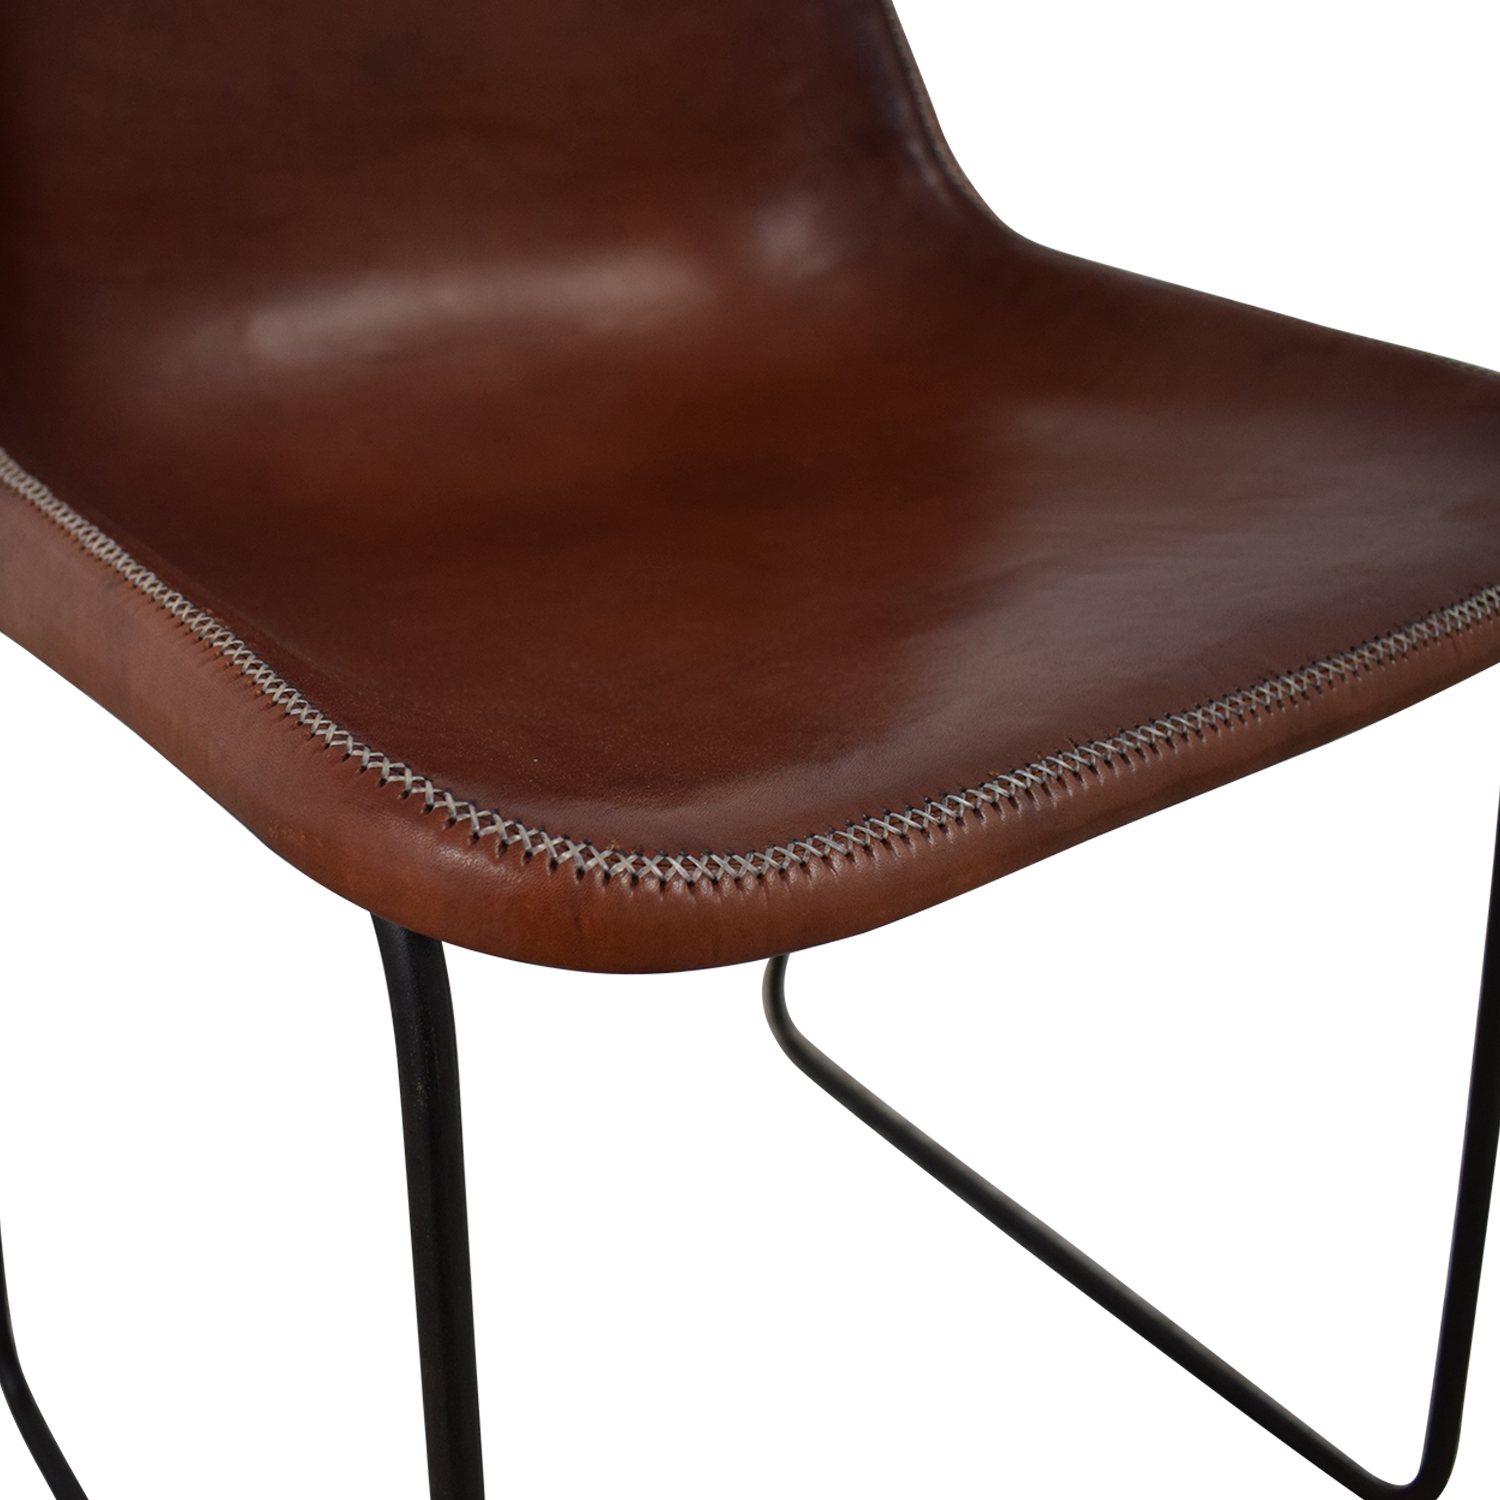 shop ABC Carpet & Home Giron Brown Leather Chair ABC Carpet & Home Dining Chairs